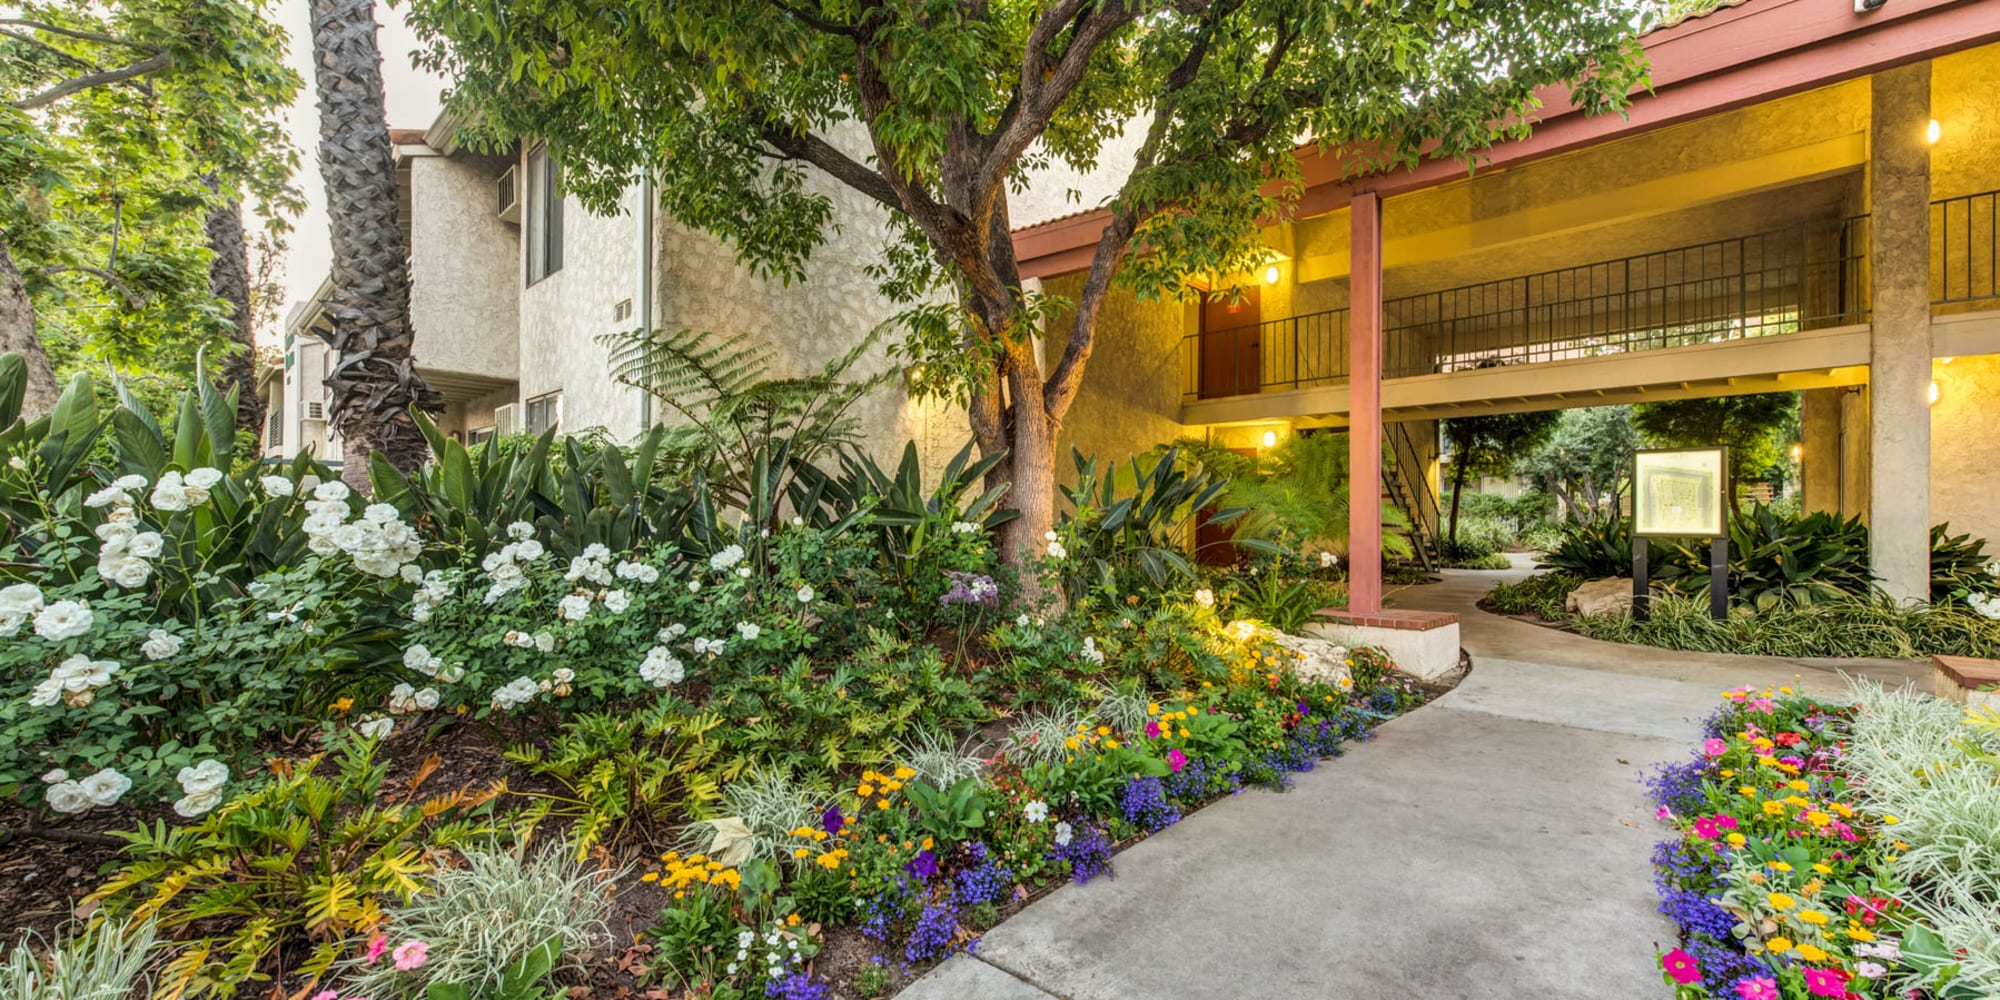 Lush landscaping along a walking path to resident buildings at Village Pointe in Northridge, California